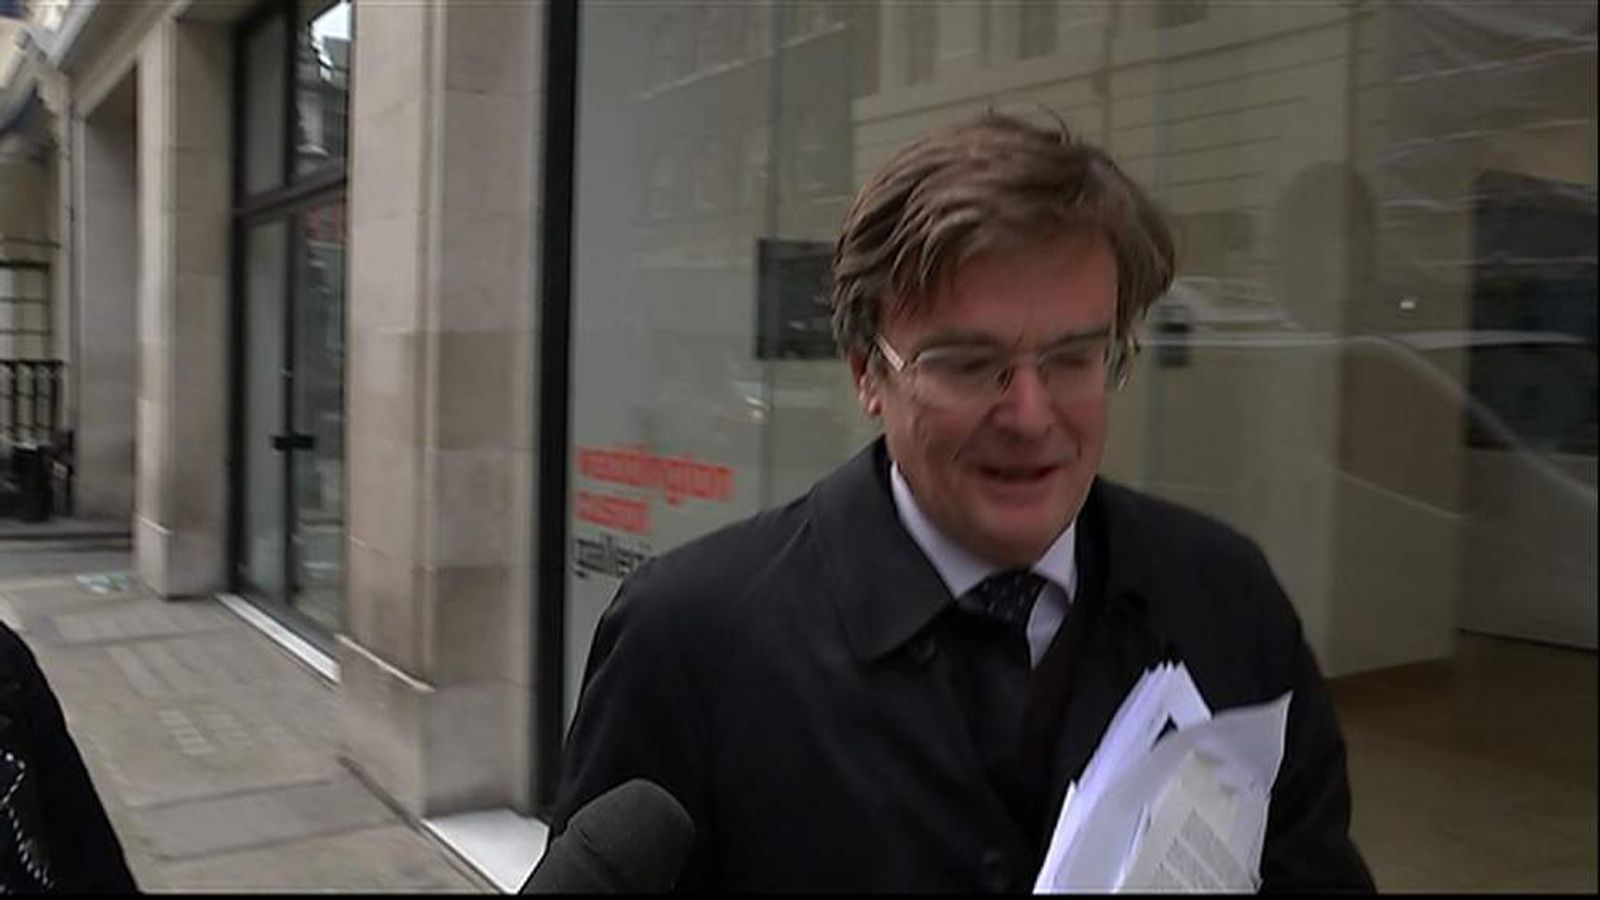 290514 CLEGG Oakeshott doorstep screengrab